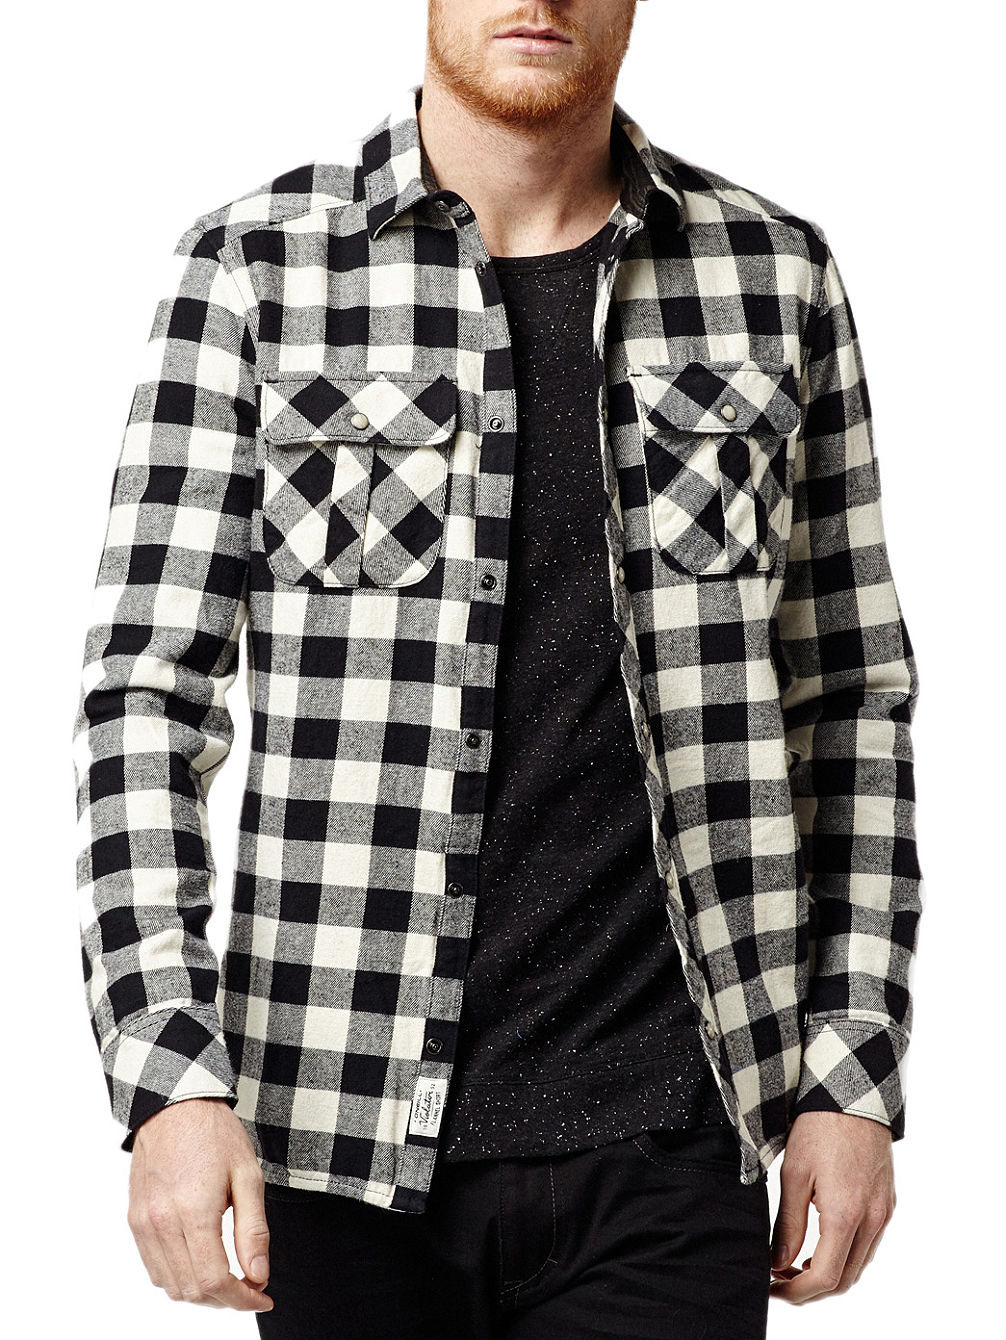 Violator Flannel Hemd